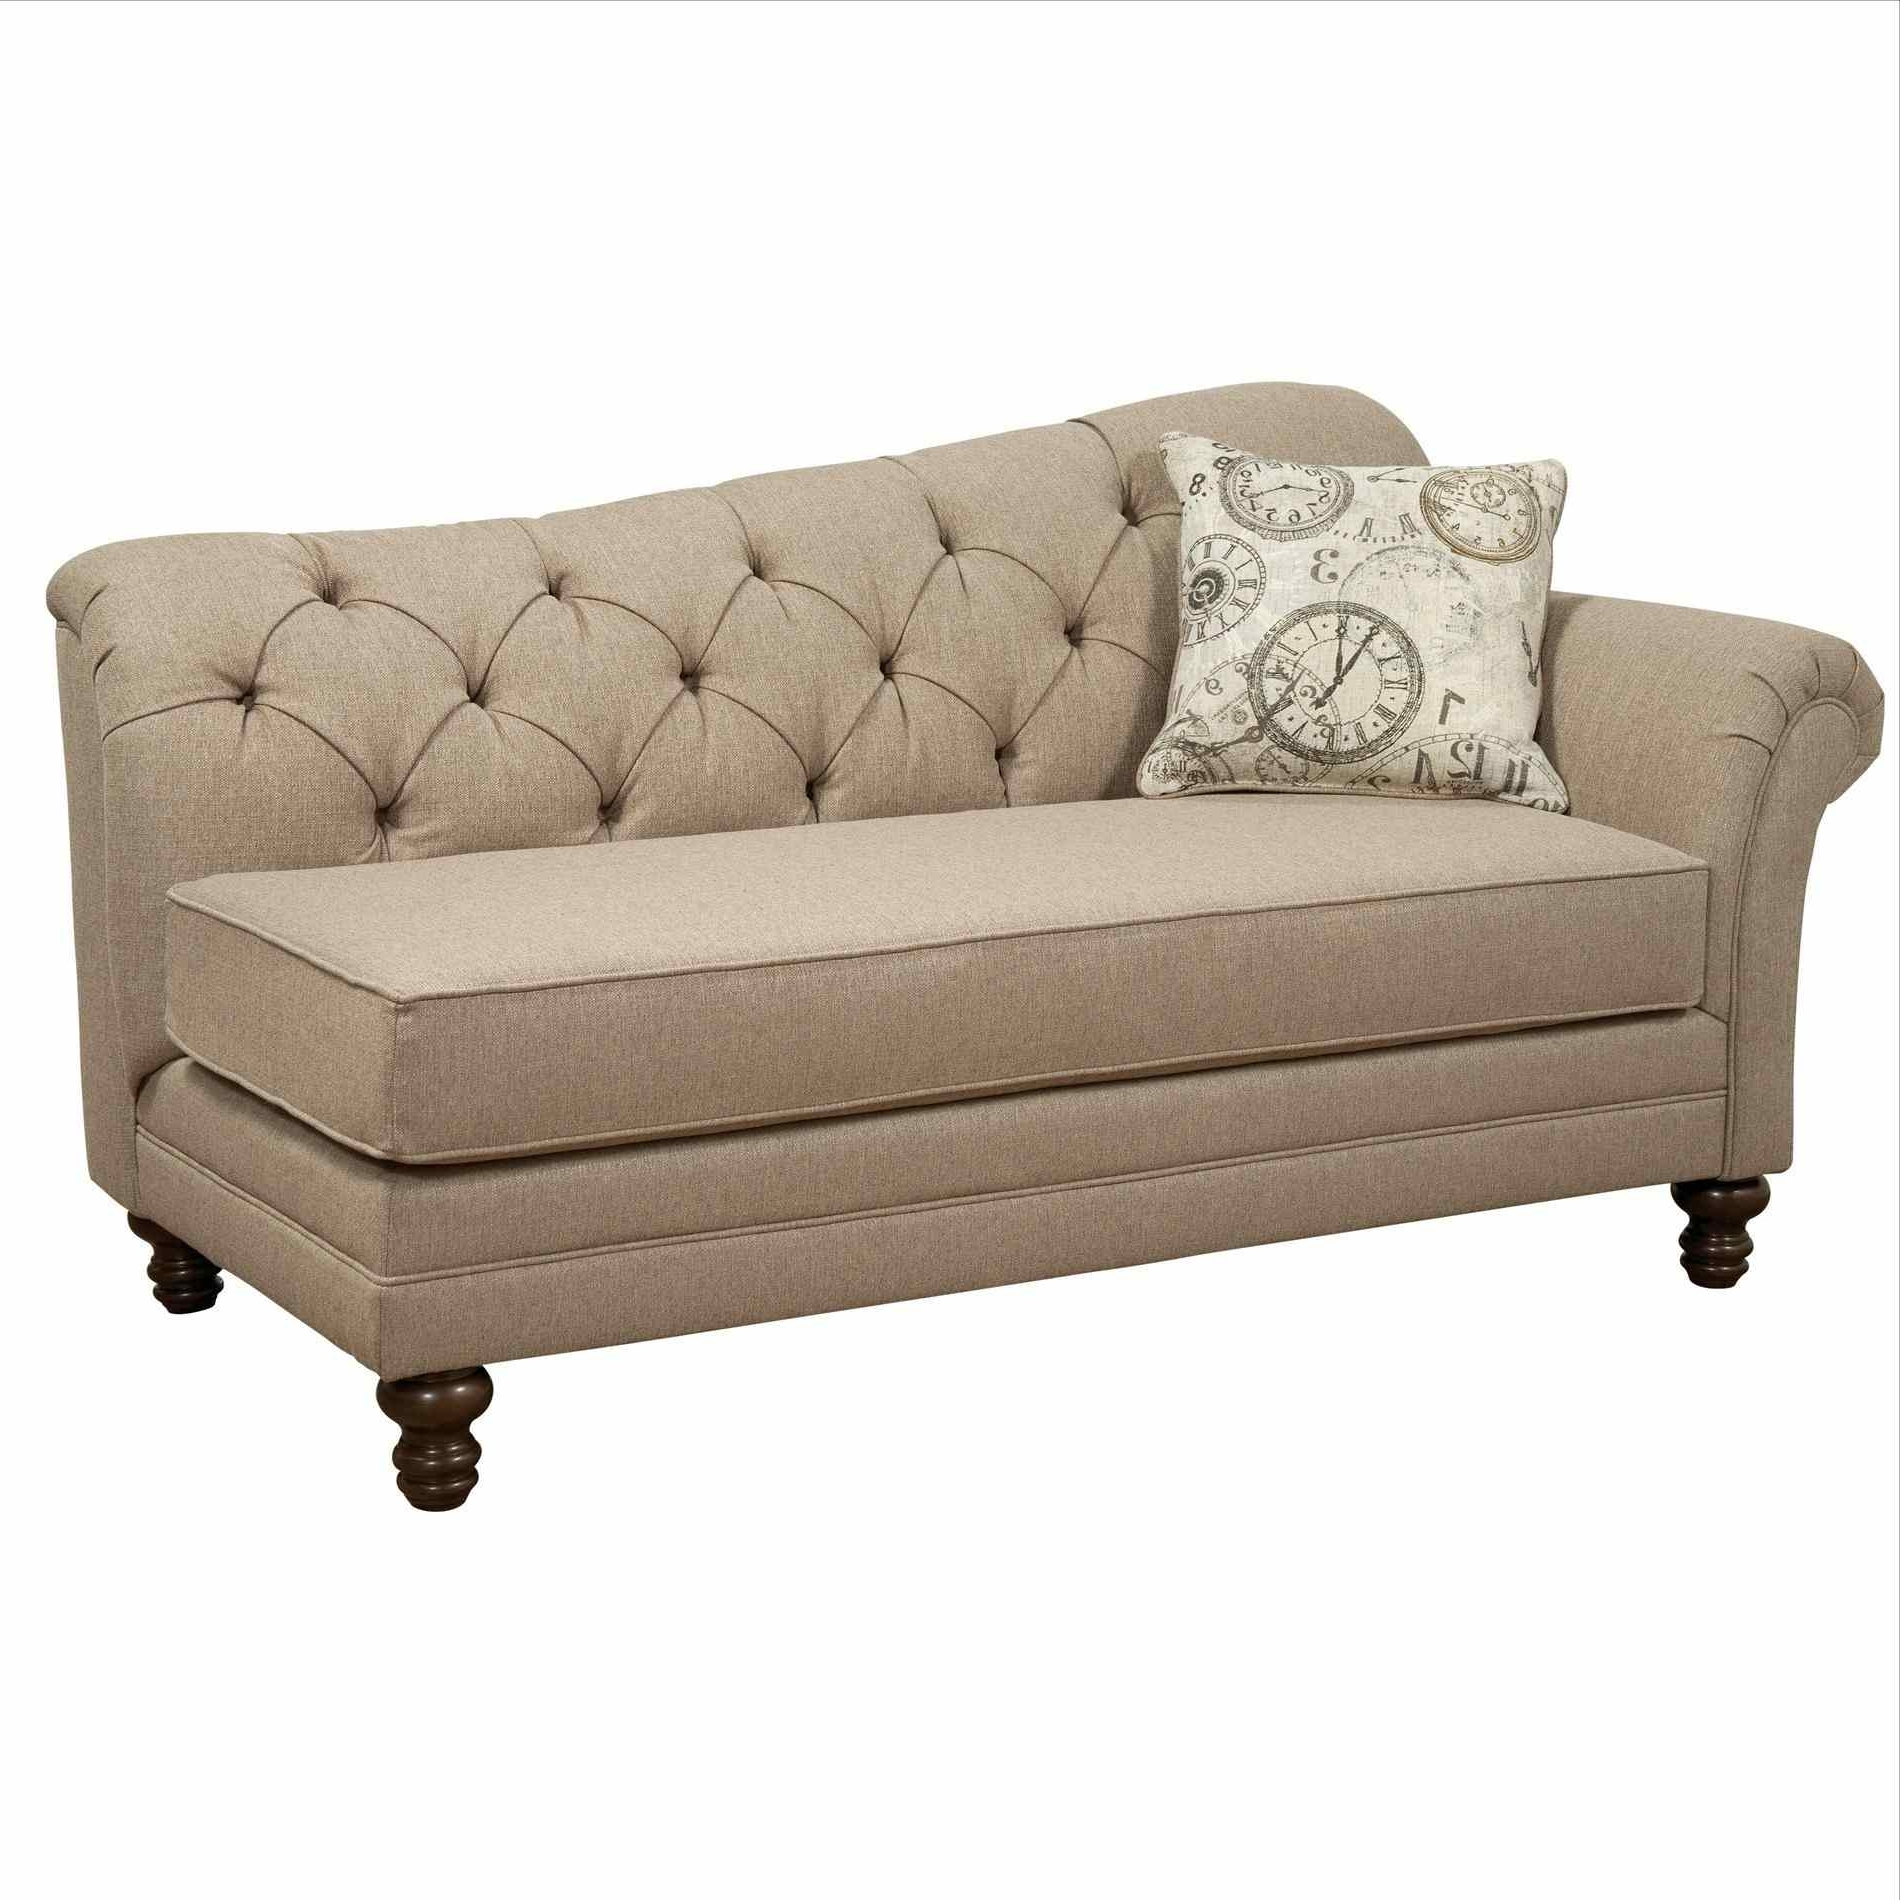 Current Old Fashioned Sofas For Sofa : Old Fashioned Sofa Sofas (View 1 of 20)